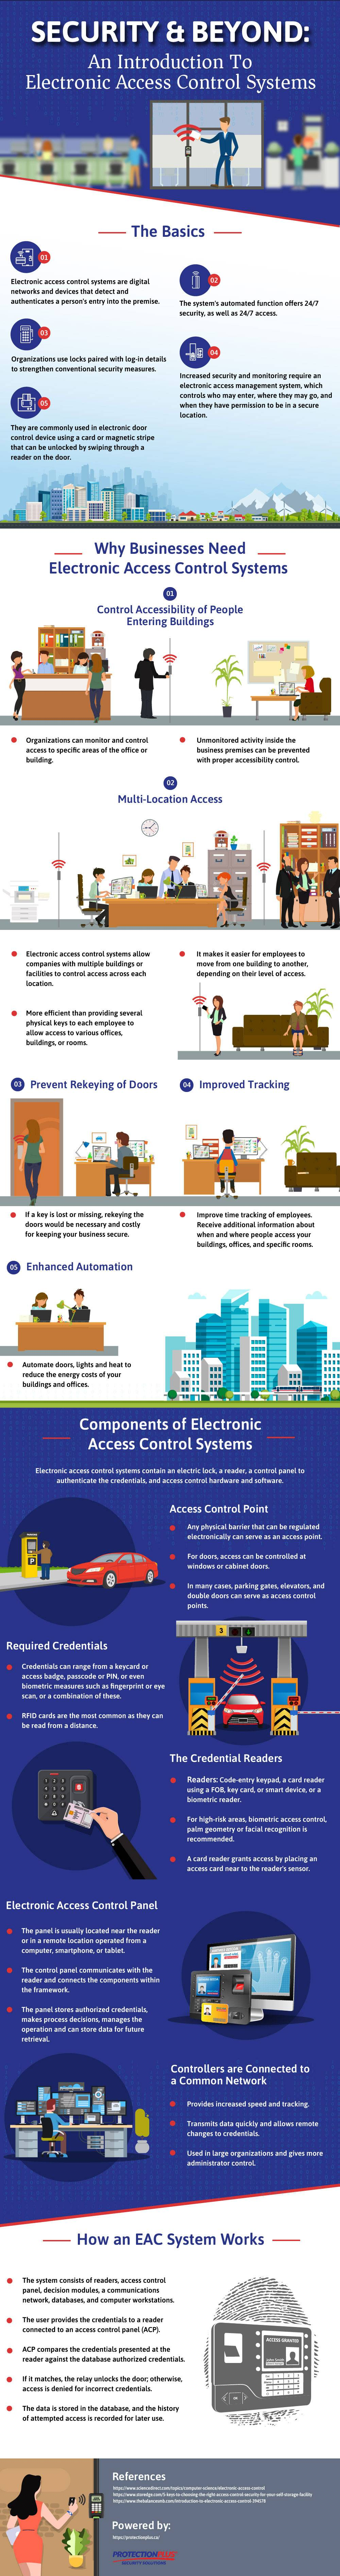 Business Needs an Electronic Access Control System